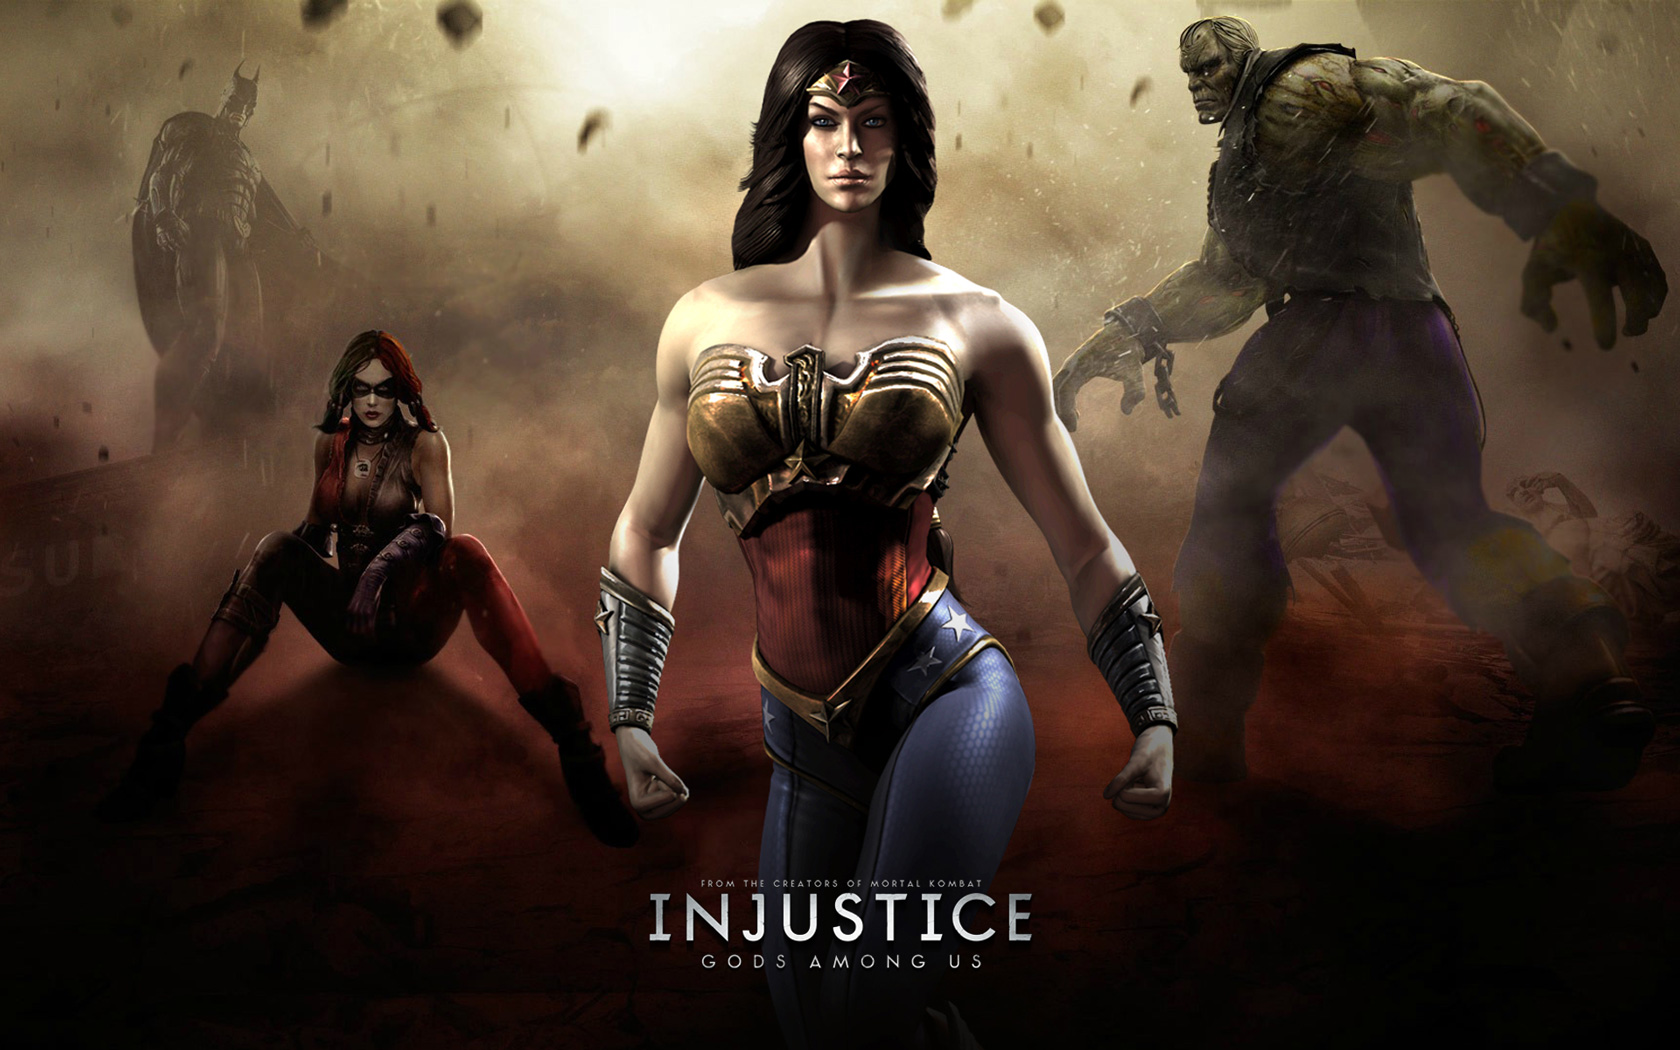 Free Injustice: Gods Among Us Wallpaper in 1680x1050